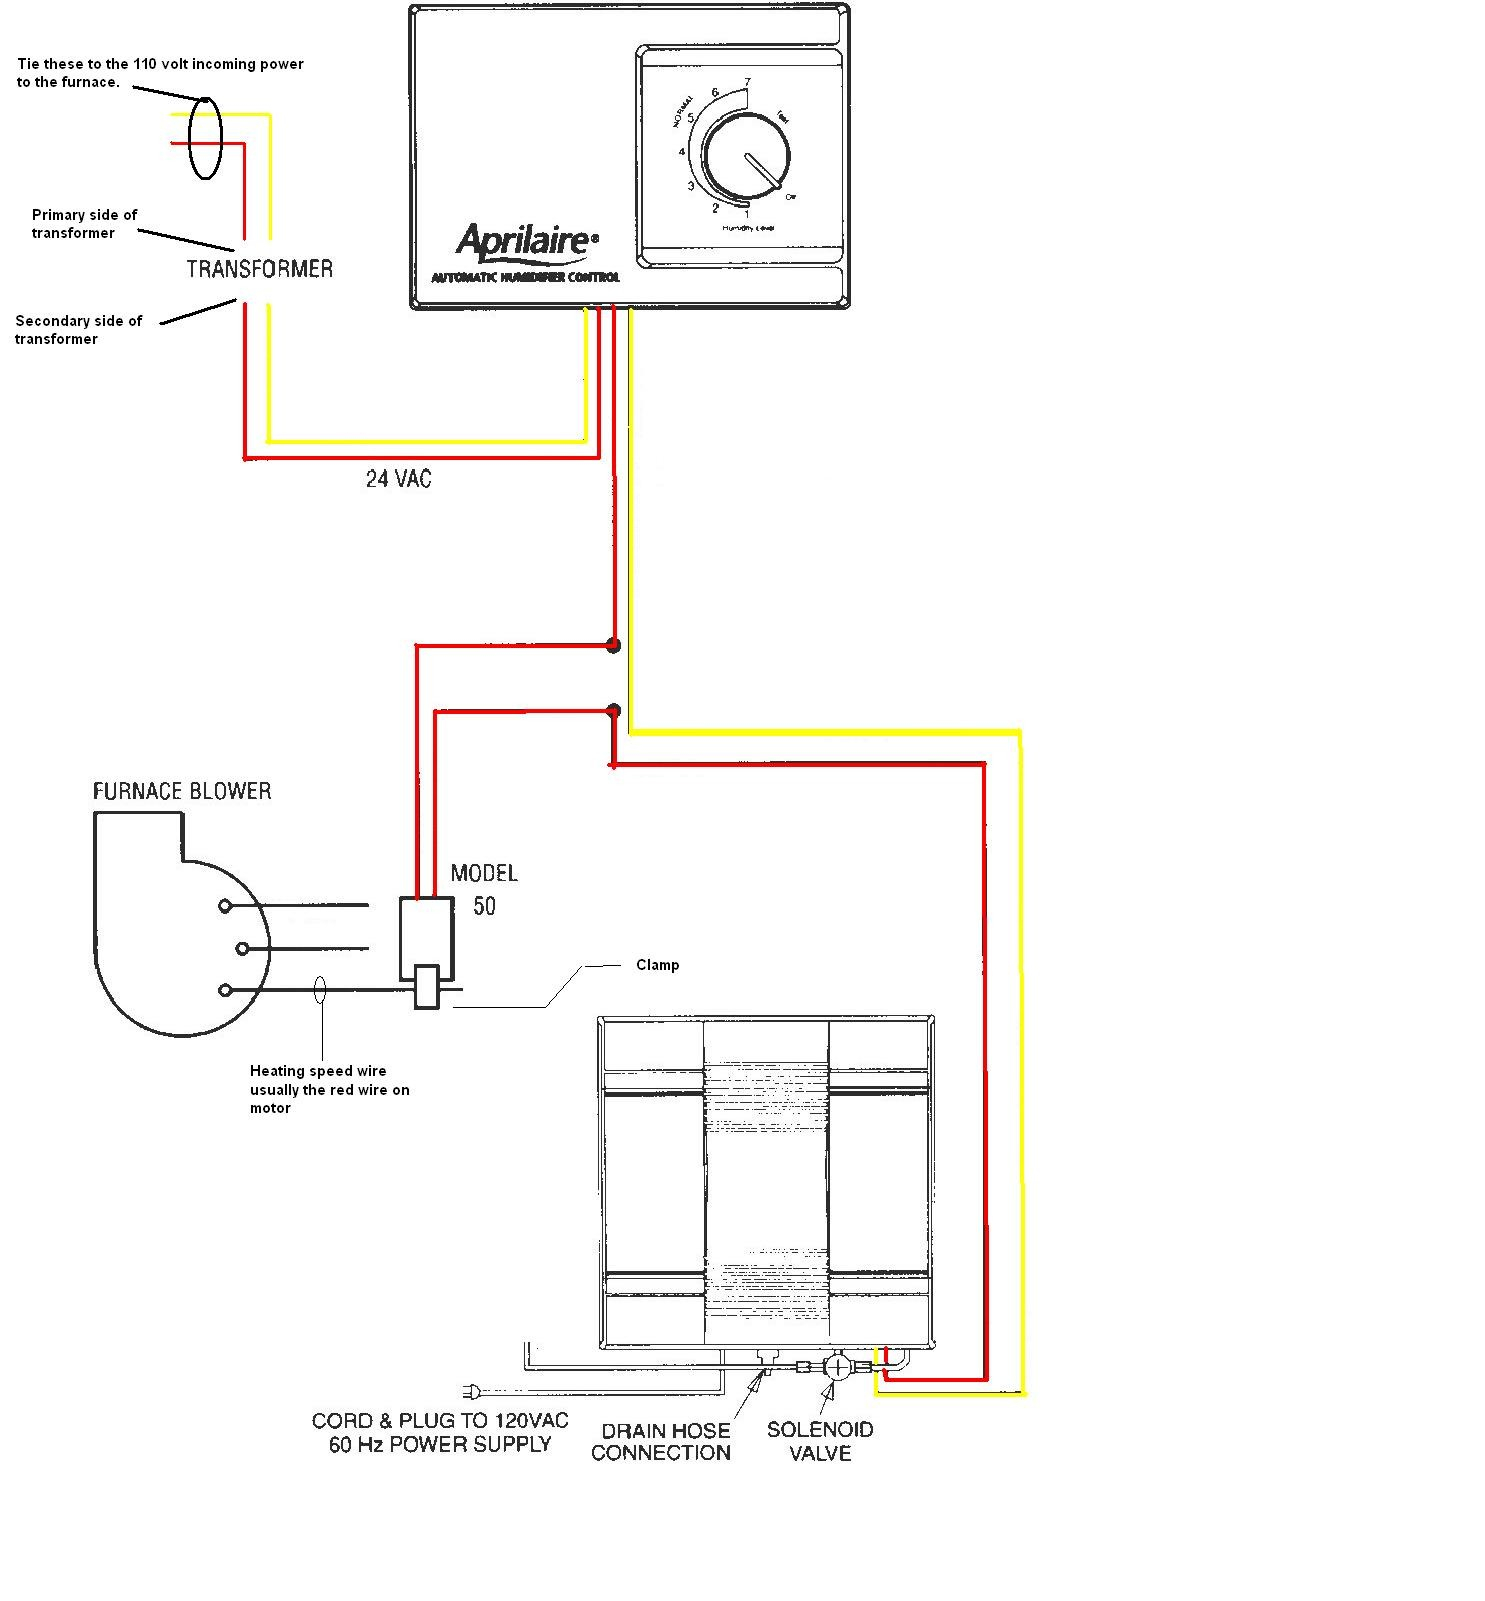 Humidifier Aprilaire 600 Wiring Diagram - Wiring Diagram Schematic on aprilaire 760 wiring schematic, aprilaire 600 parts list, aprilaire 700 wiring schematic, aprilaire 600 installation,